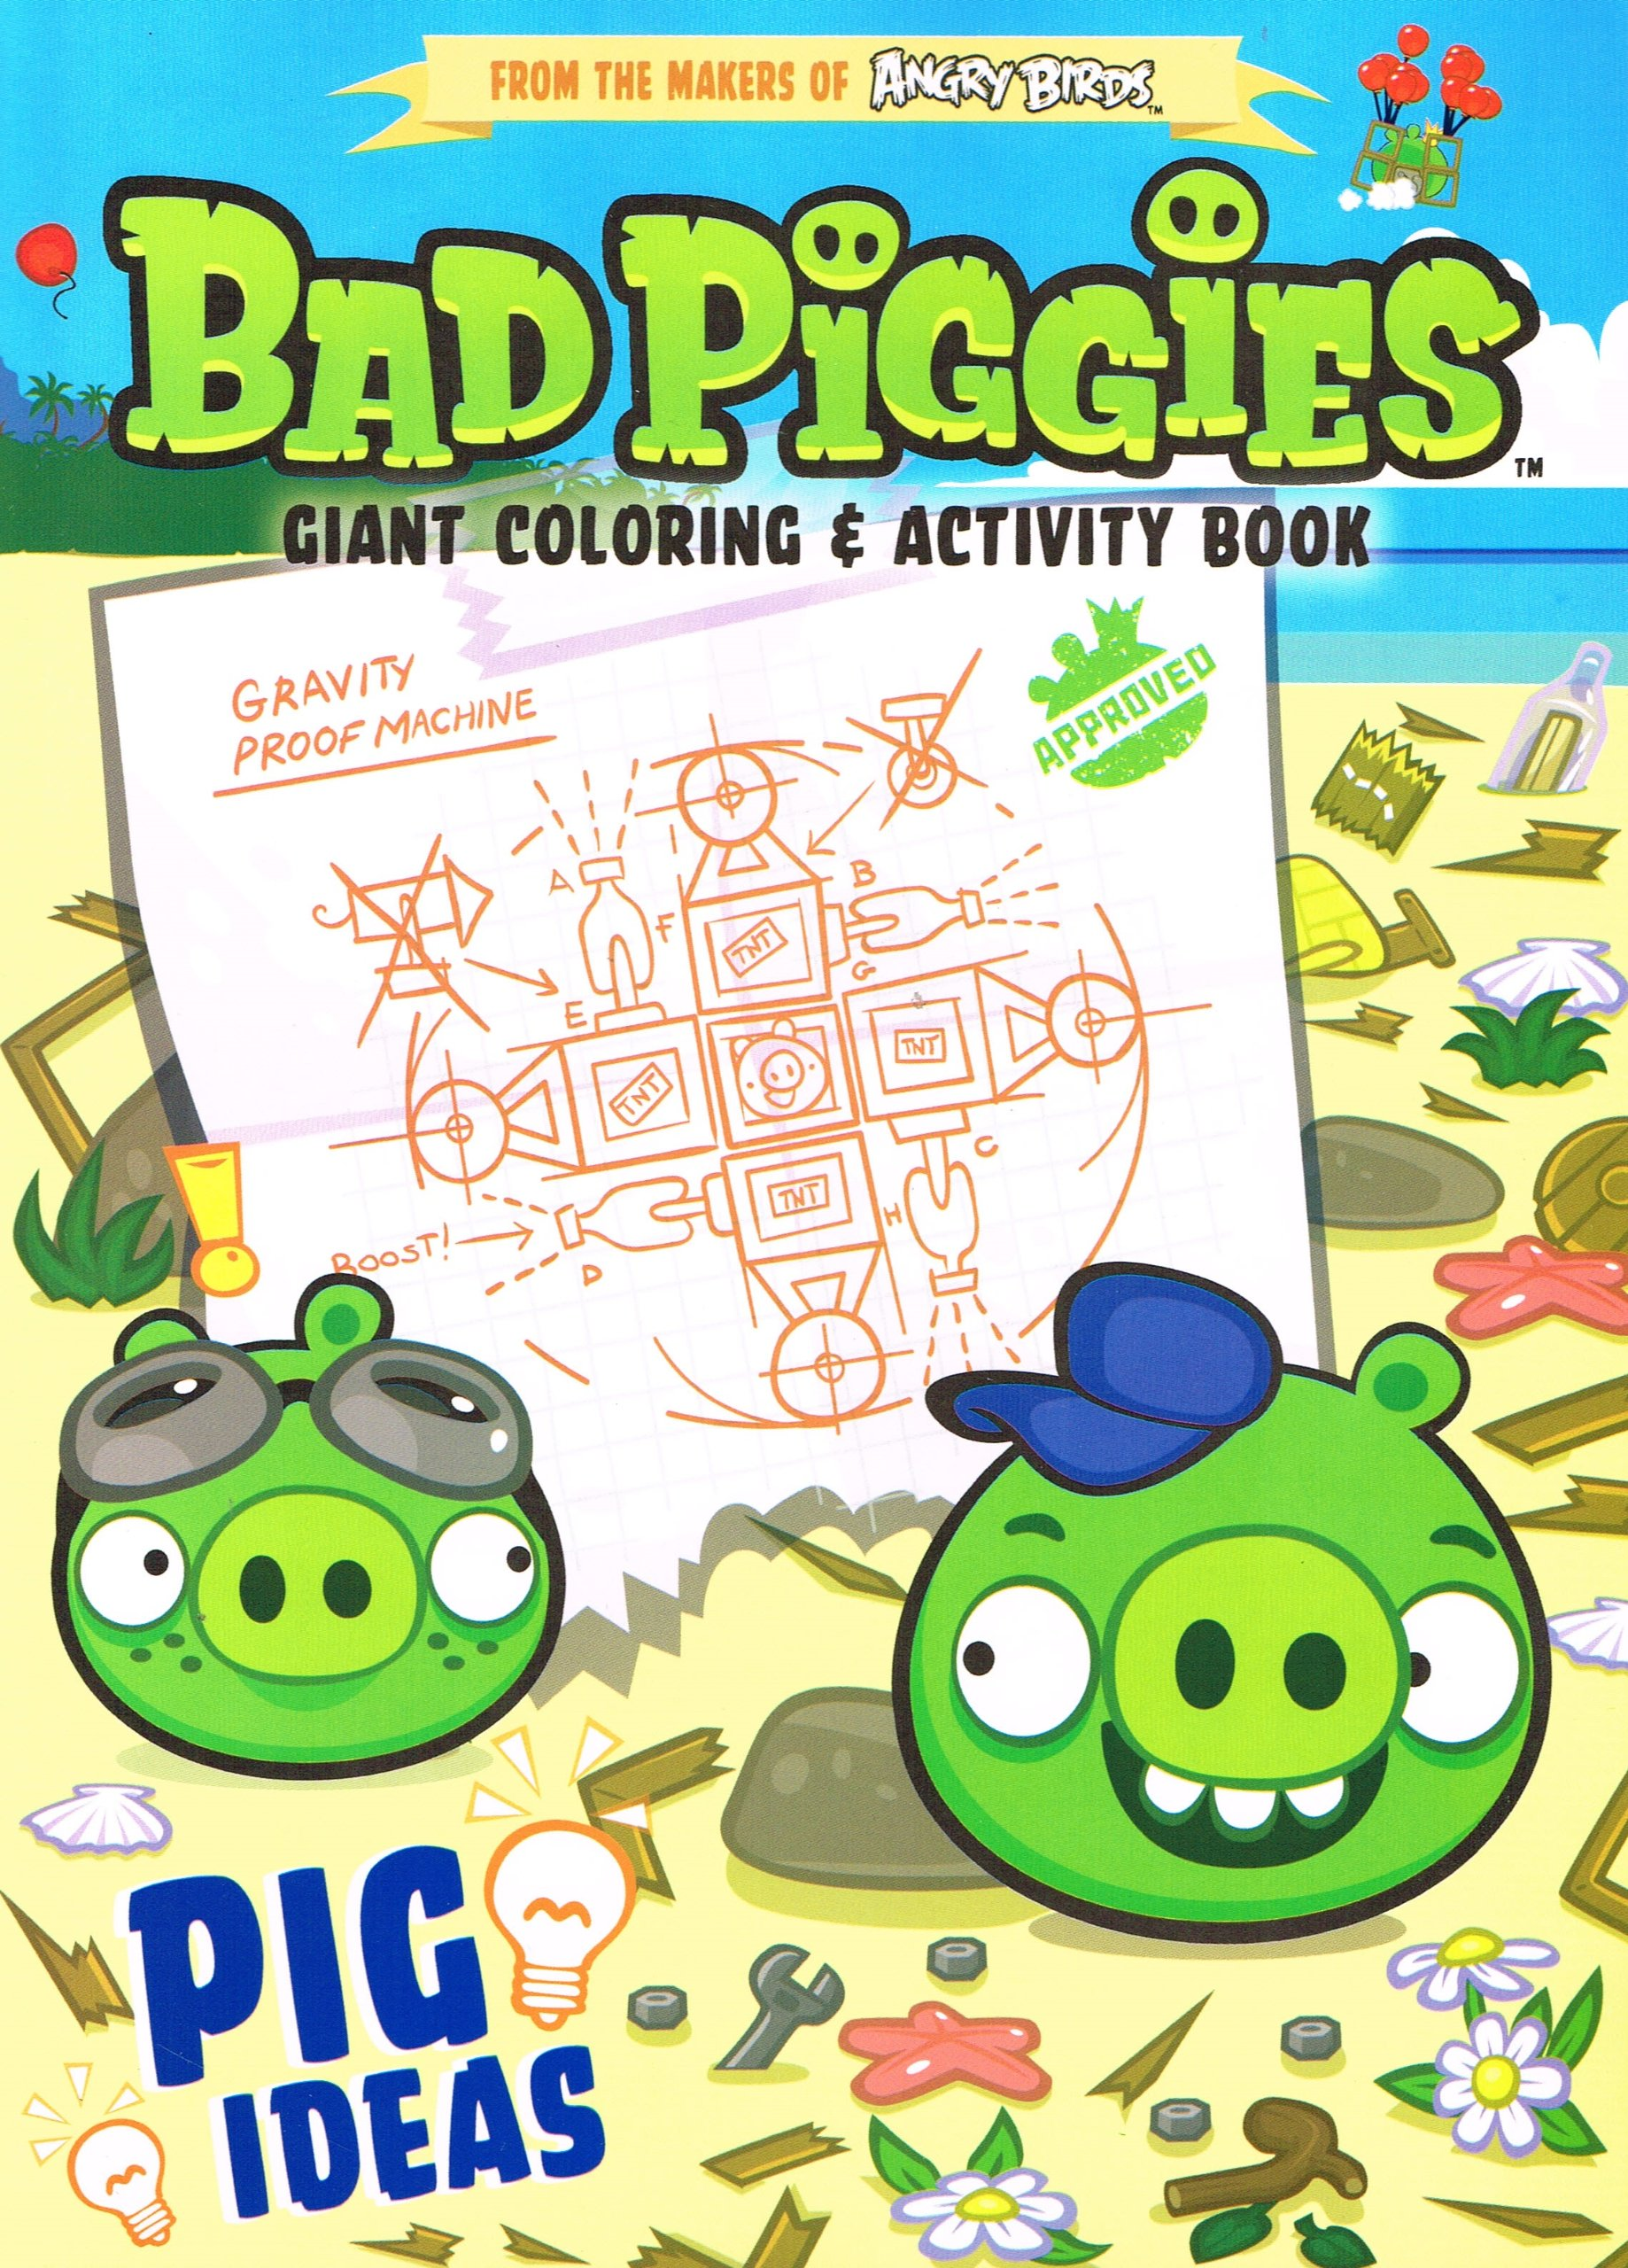 - Angry Birds Bad Piggies Giant Coloring & Activity Book ~ Pig Ideas